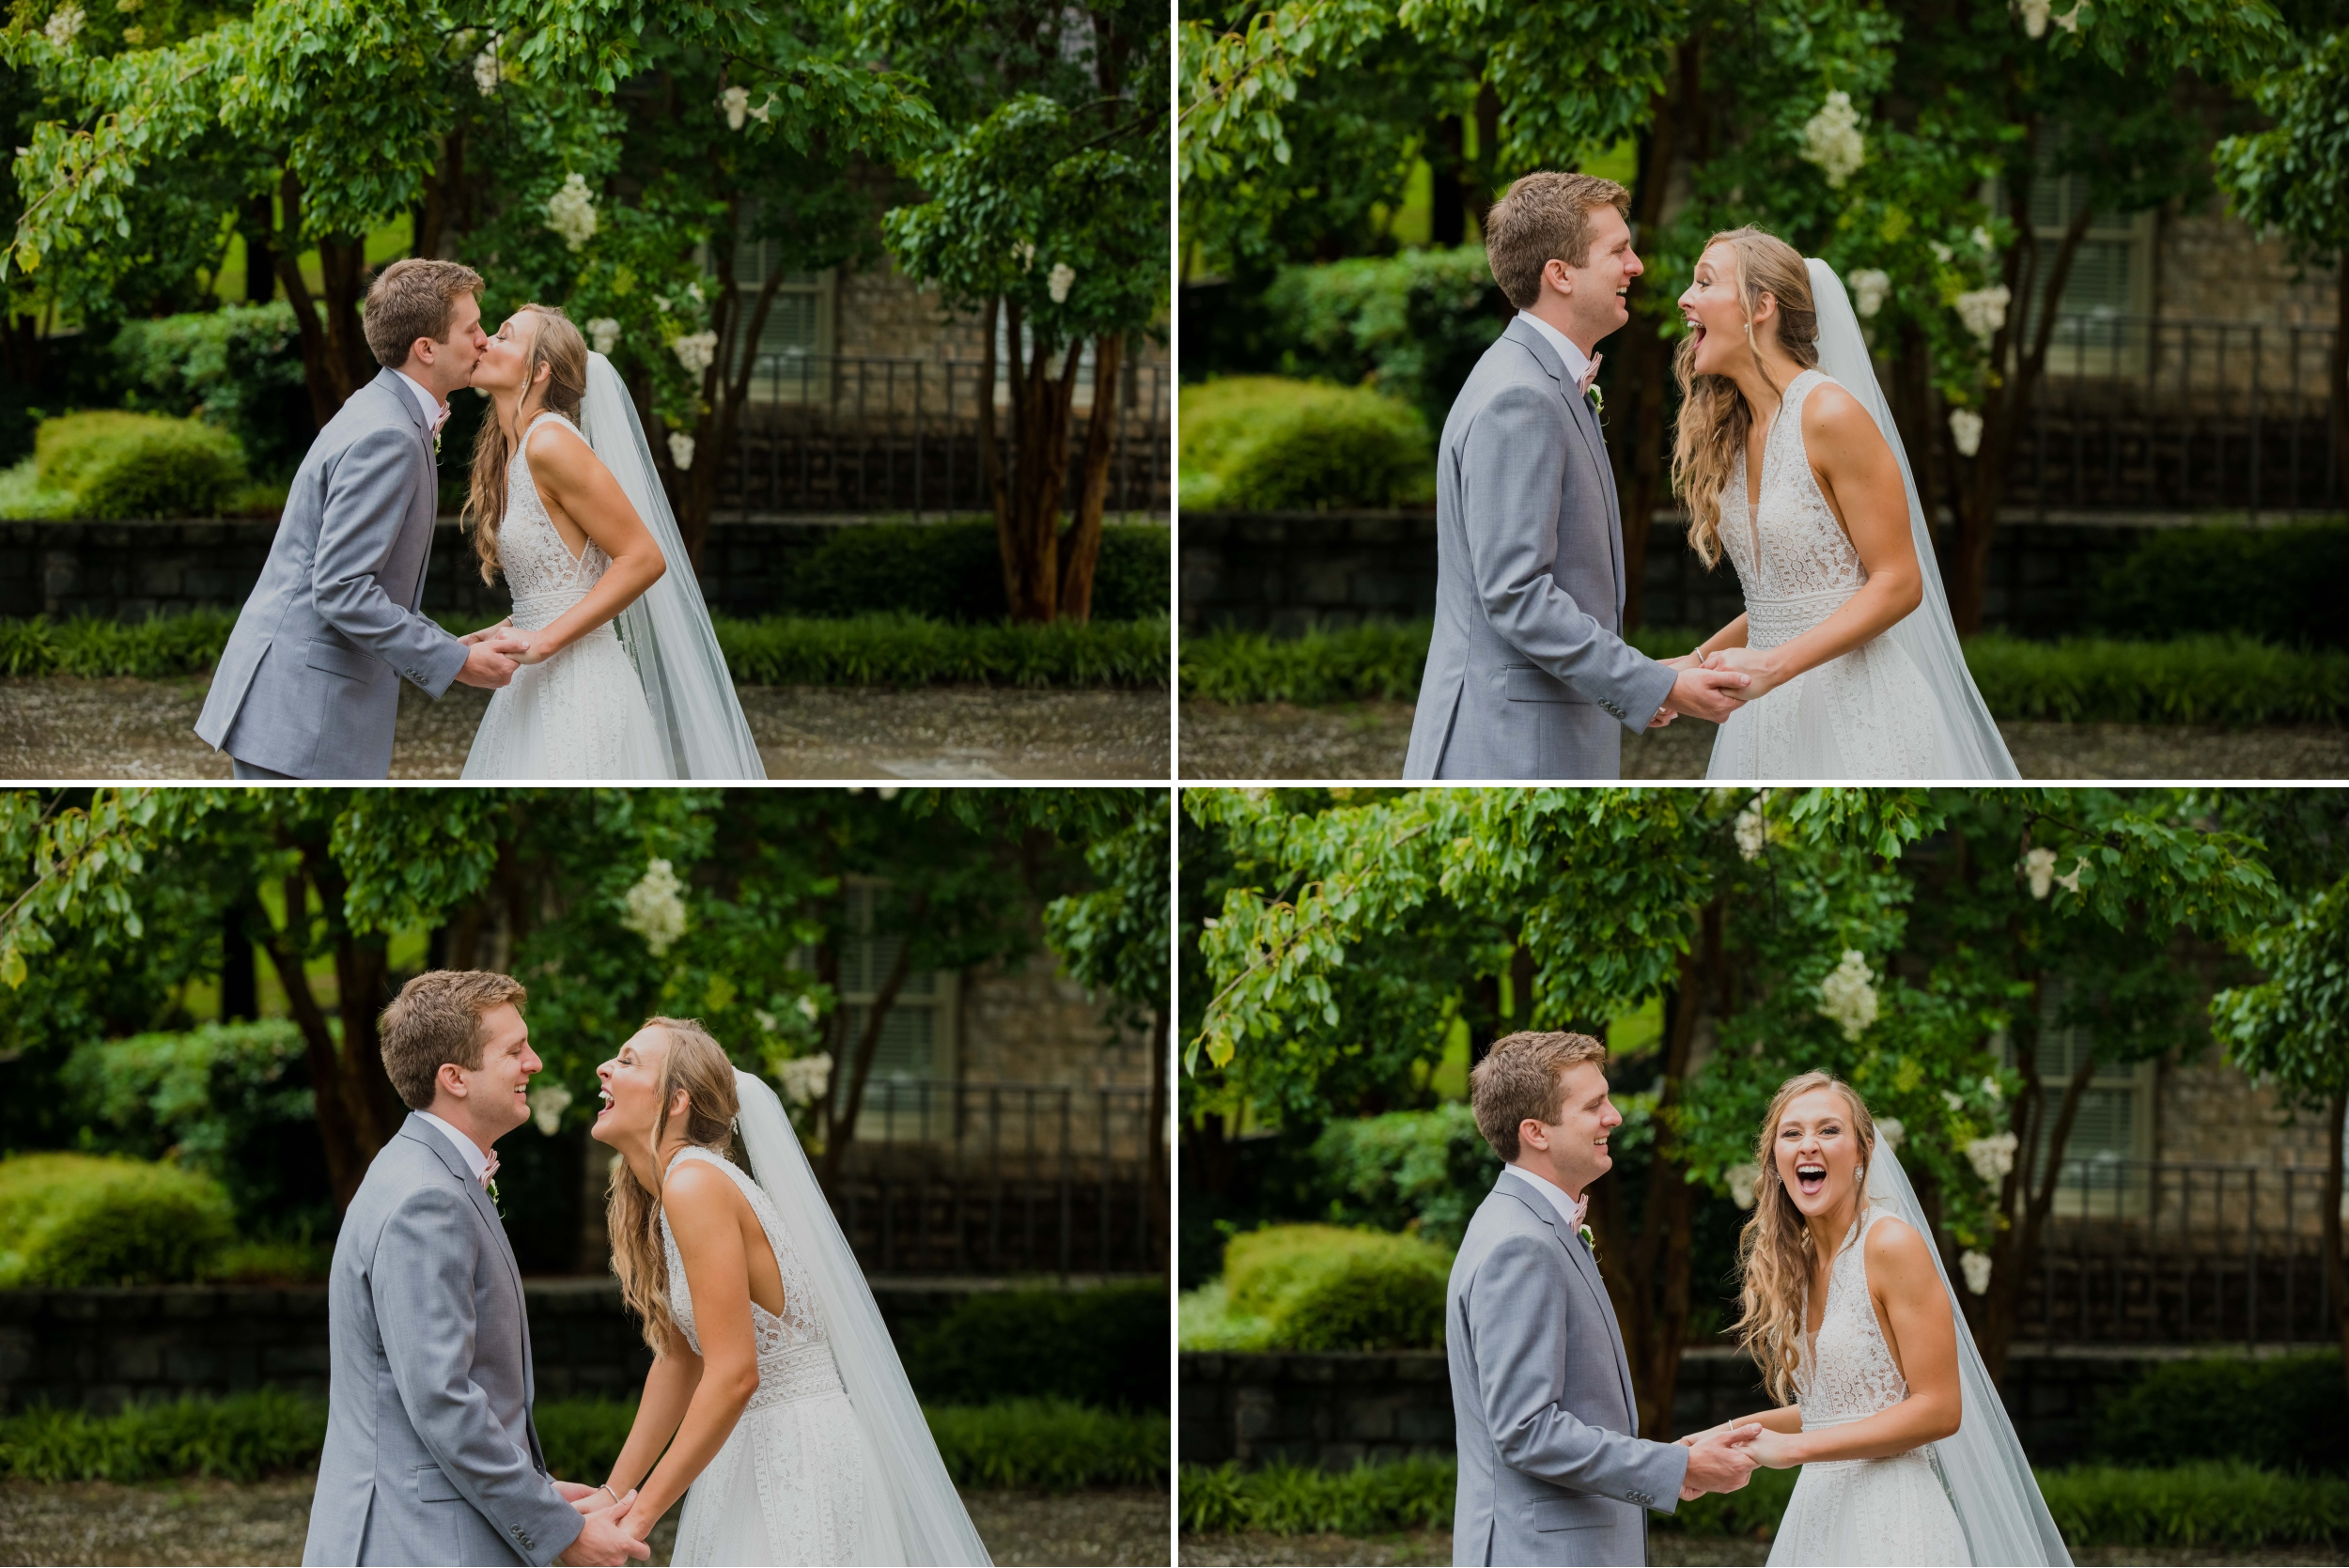 Wedding Piedmont Park - Magnolia Hall - Santy Martinez Photography 33.jpg